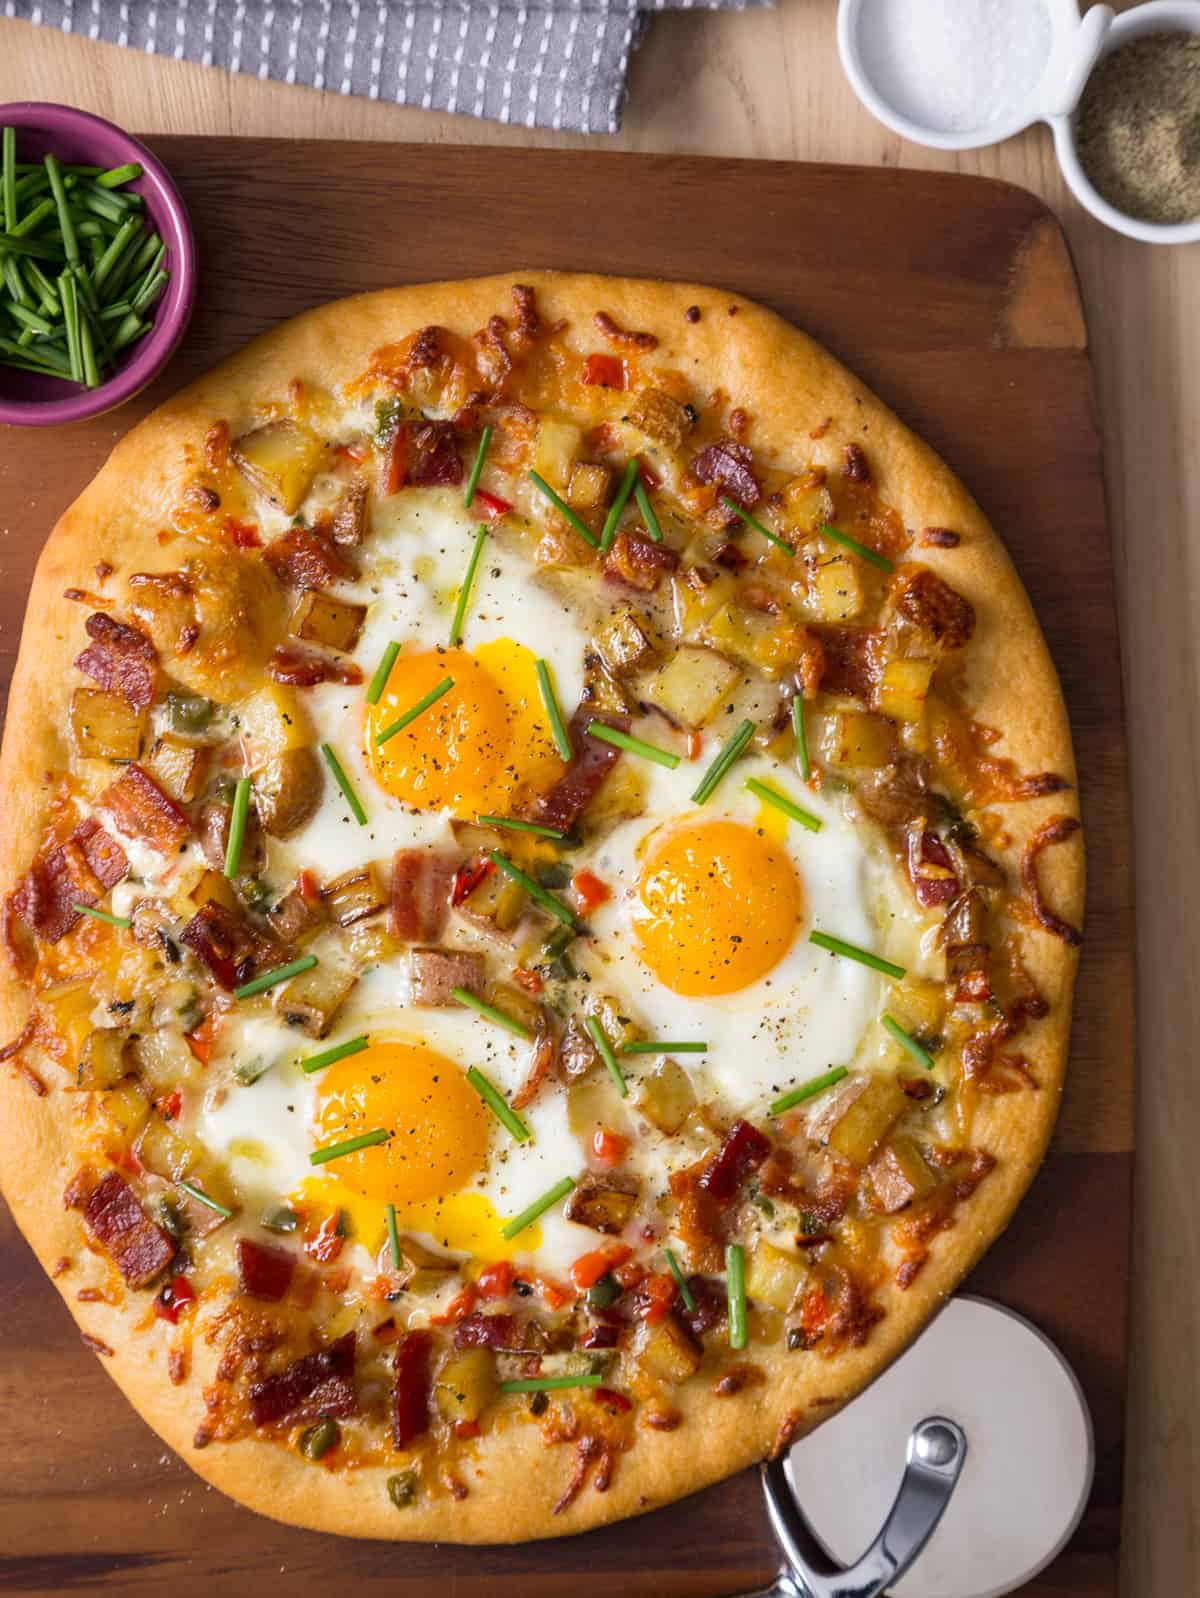 A breakfast pizza on a wooden cutting board with a bowl of chives on the side.